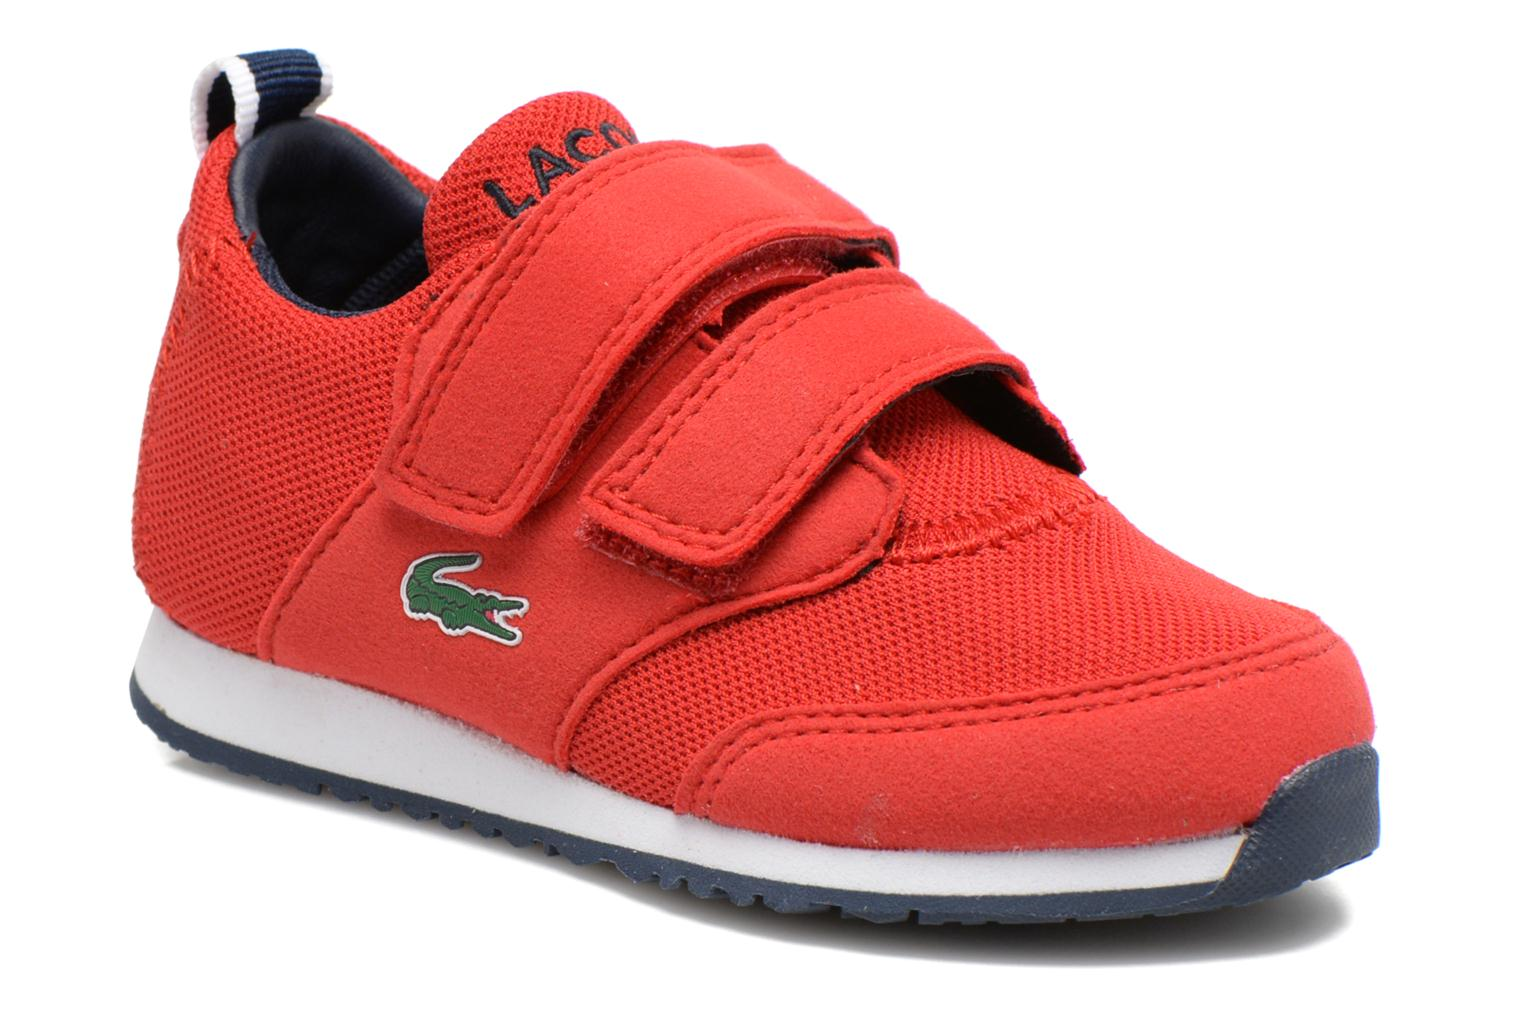 Sneakers L.ight 116 1 Spi by Lacoste